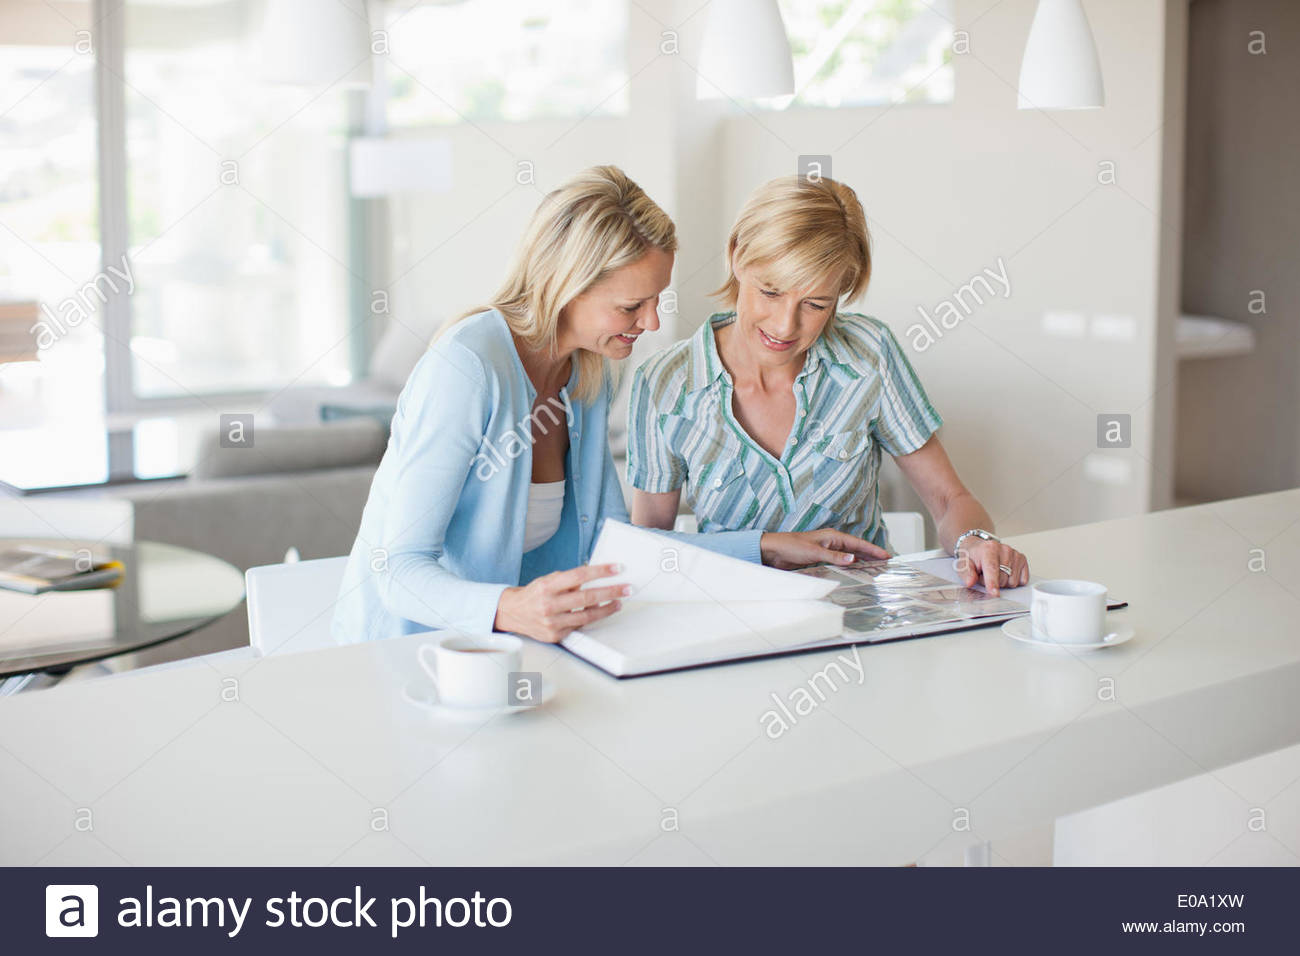 Friends looking at photo album together - Stock Image